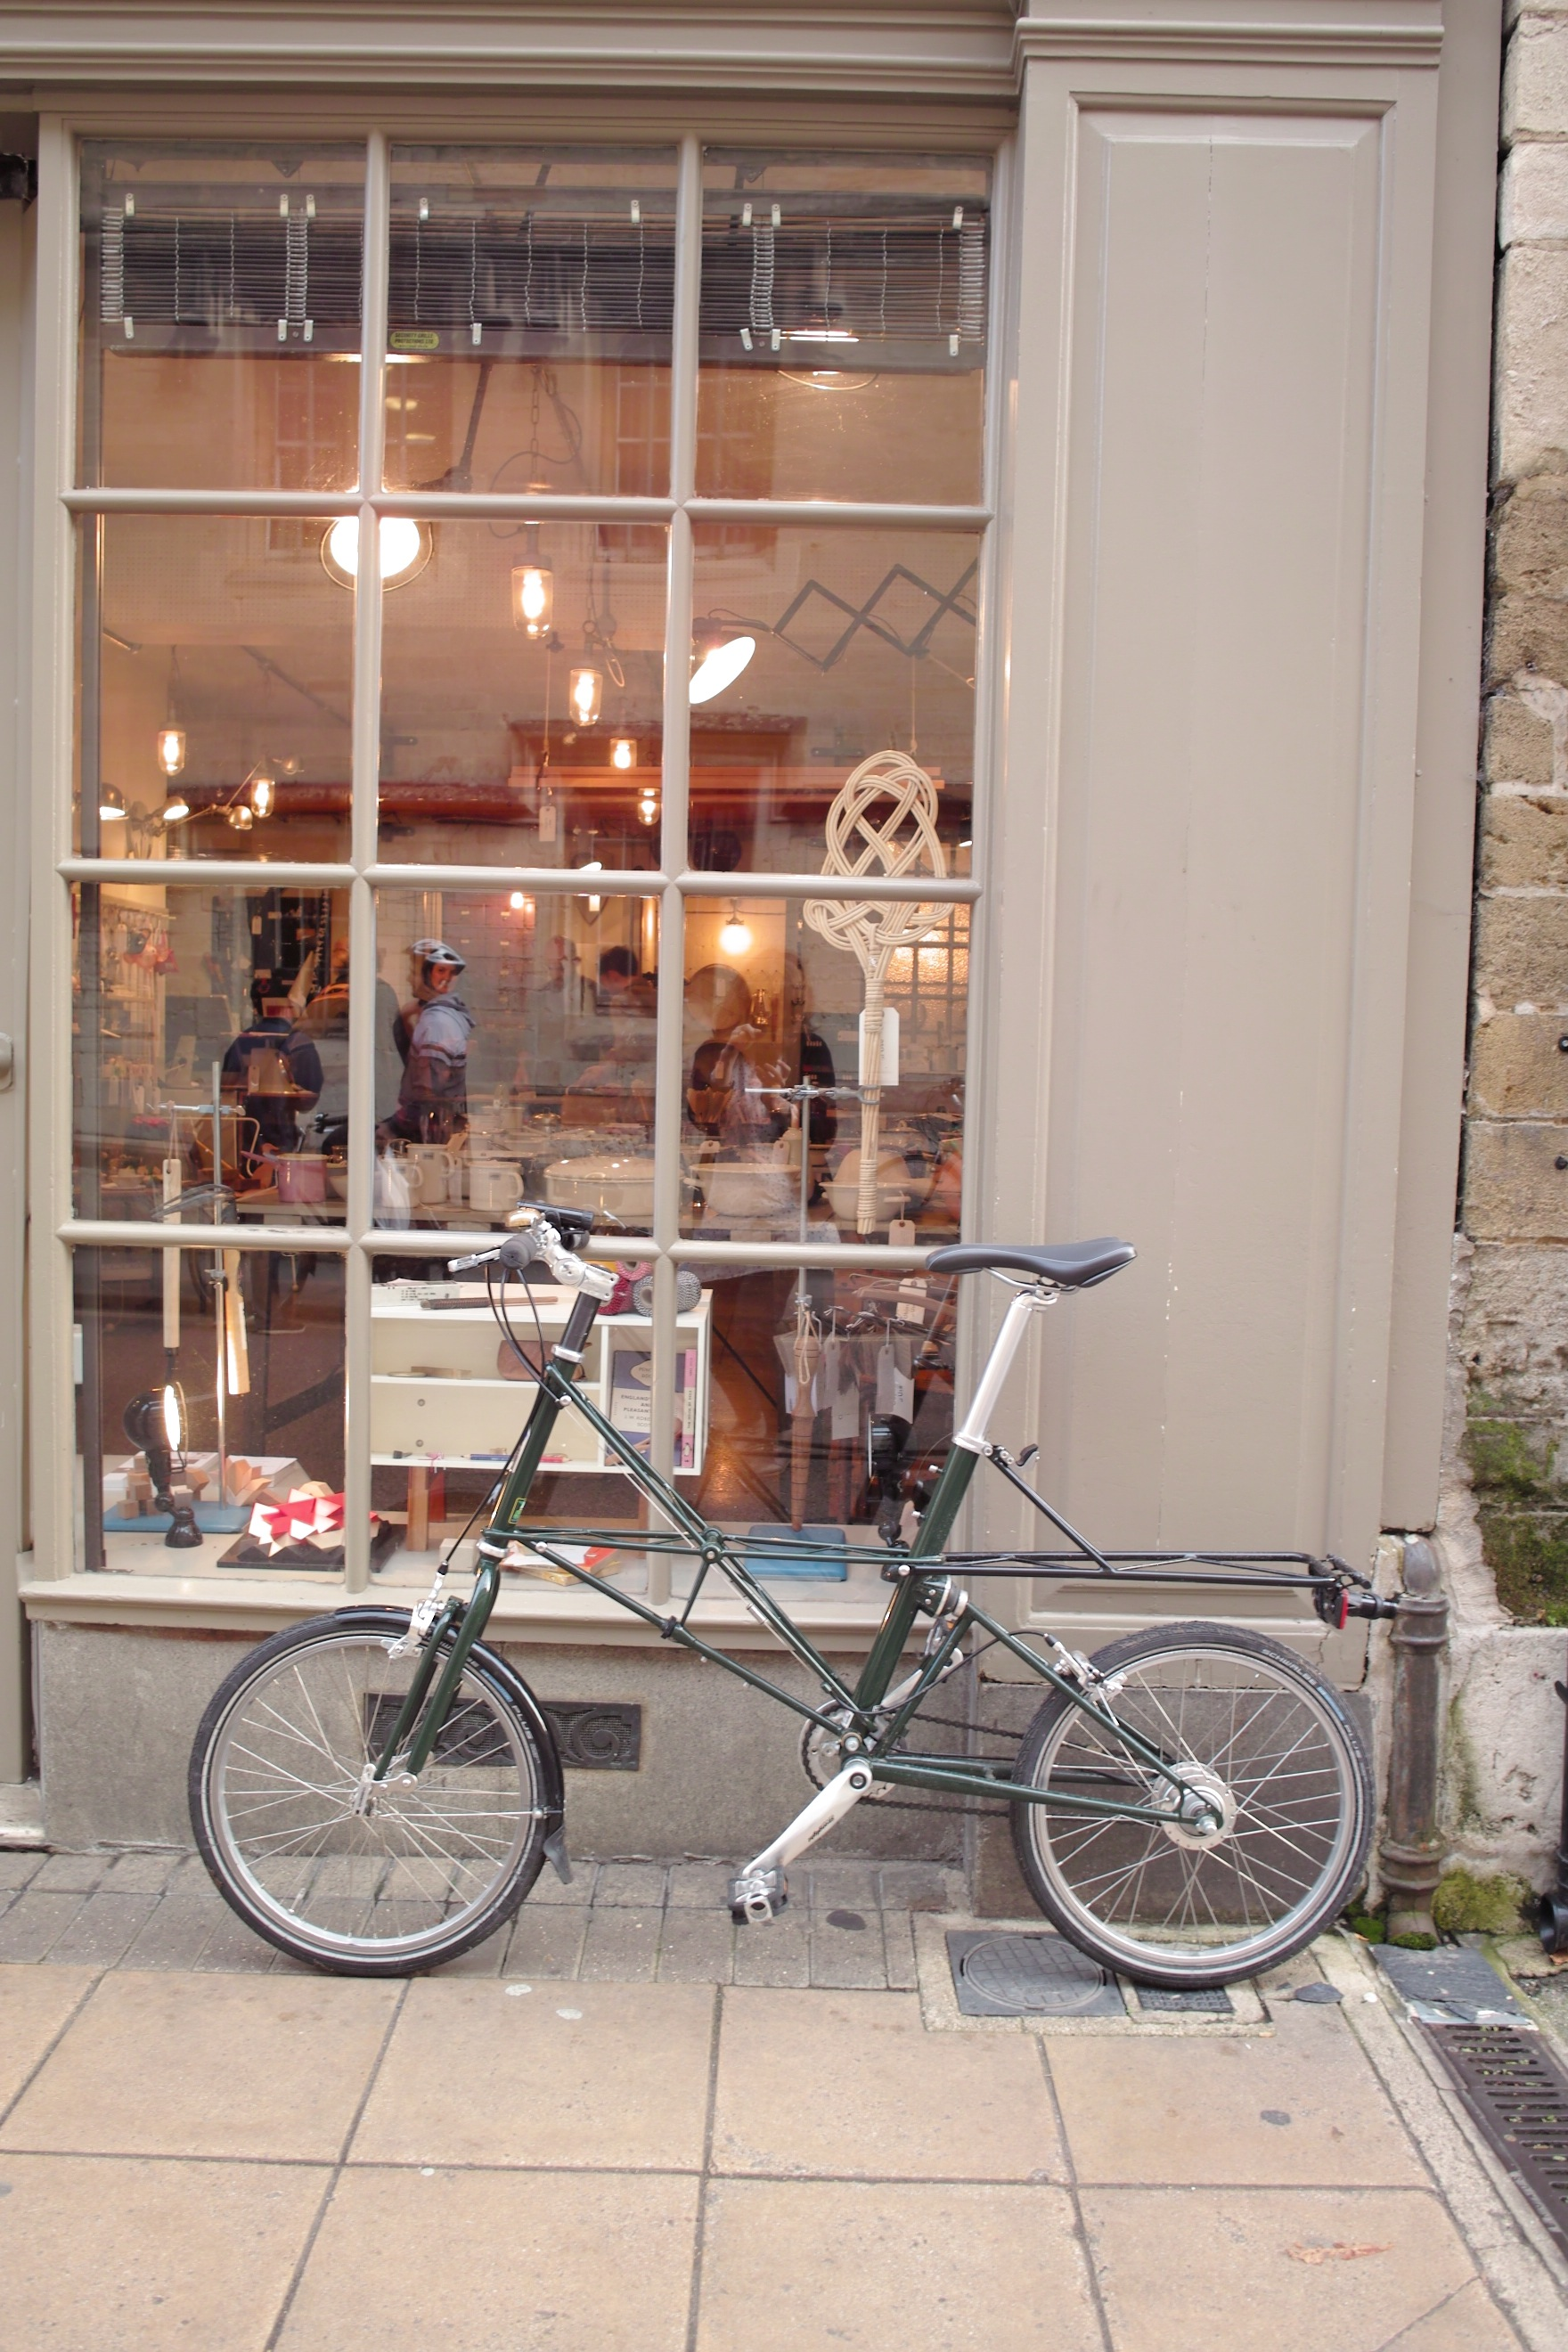 OoU bike and the shop